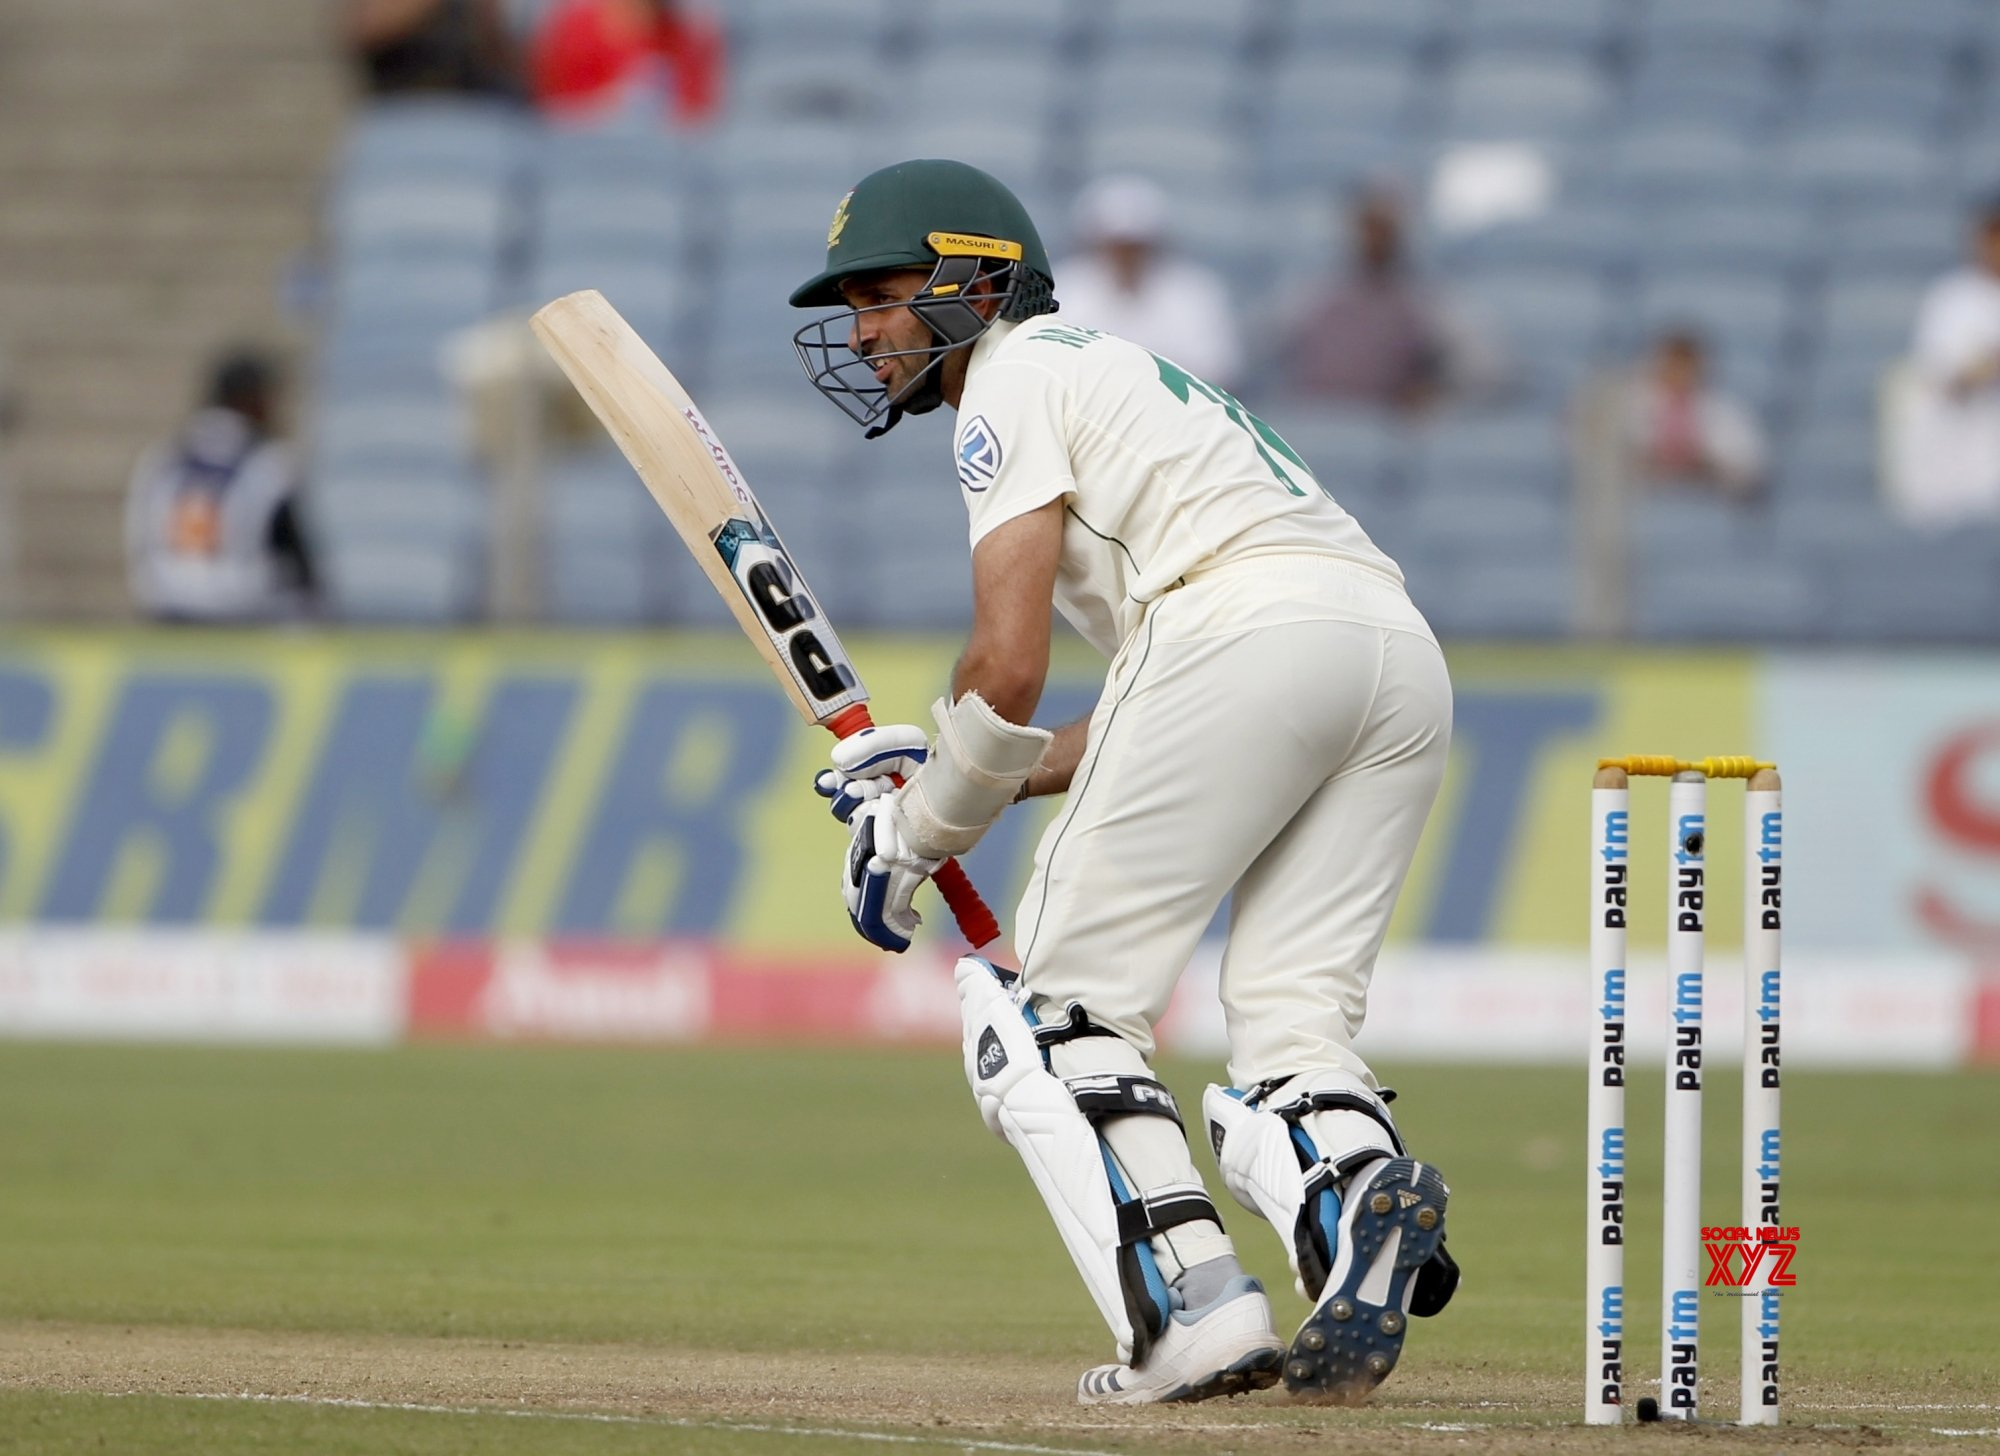 Pune: 2nd Test - India Vs South Africa - Day 3 (Batch - 15) #Gallery